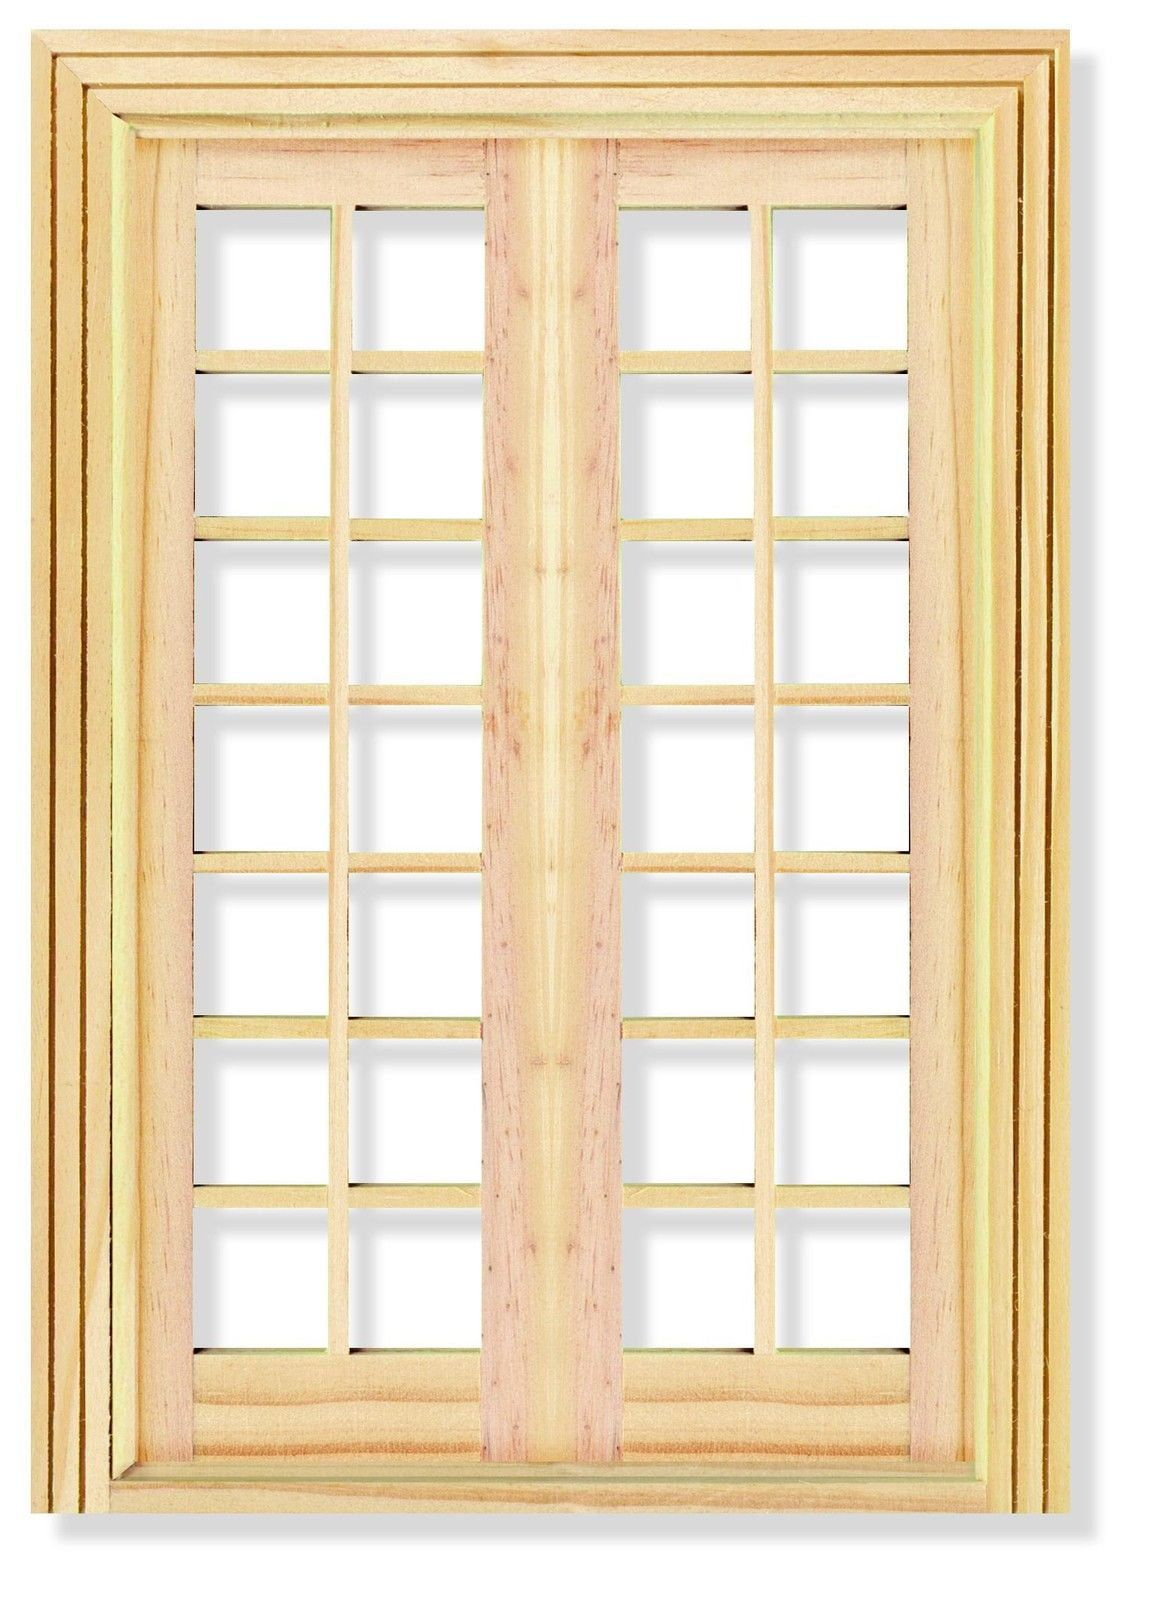 Deluxe Wooden French Doors 1/12th Scale for Dolls House